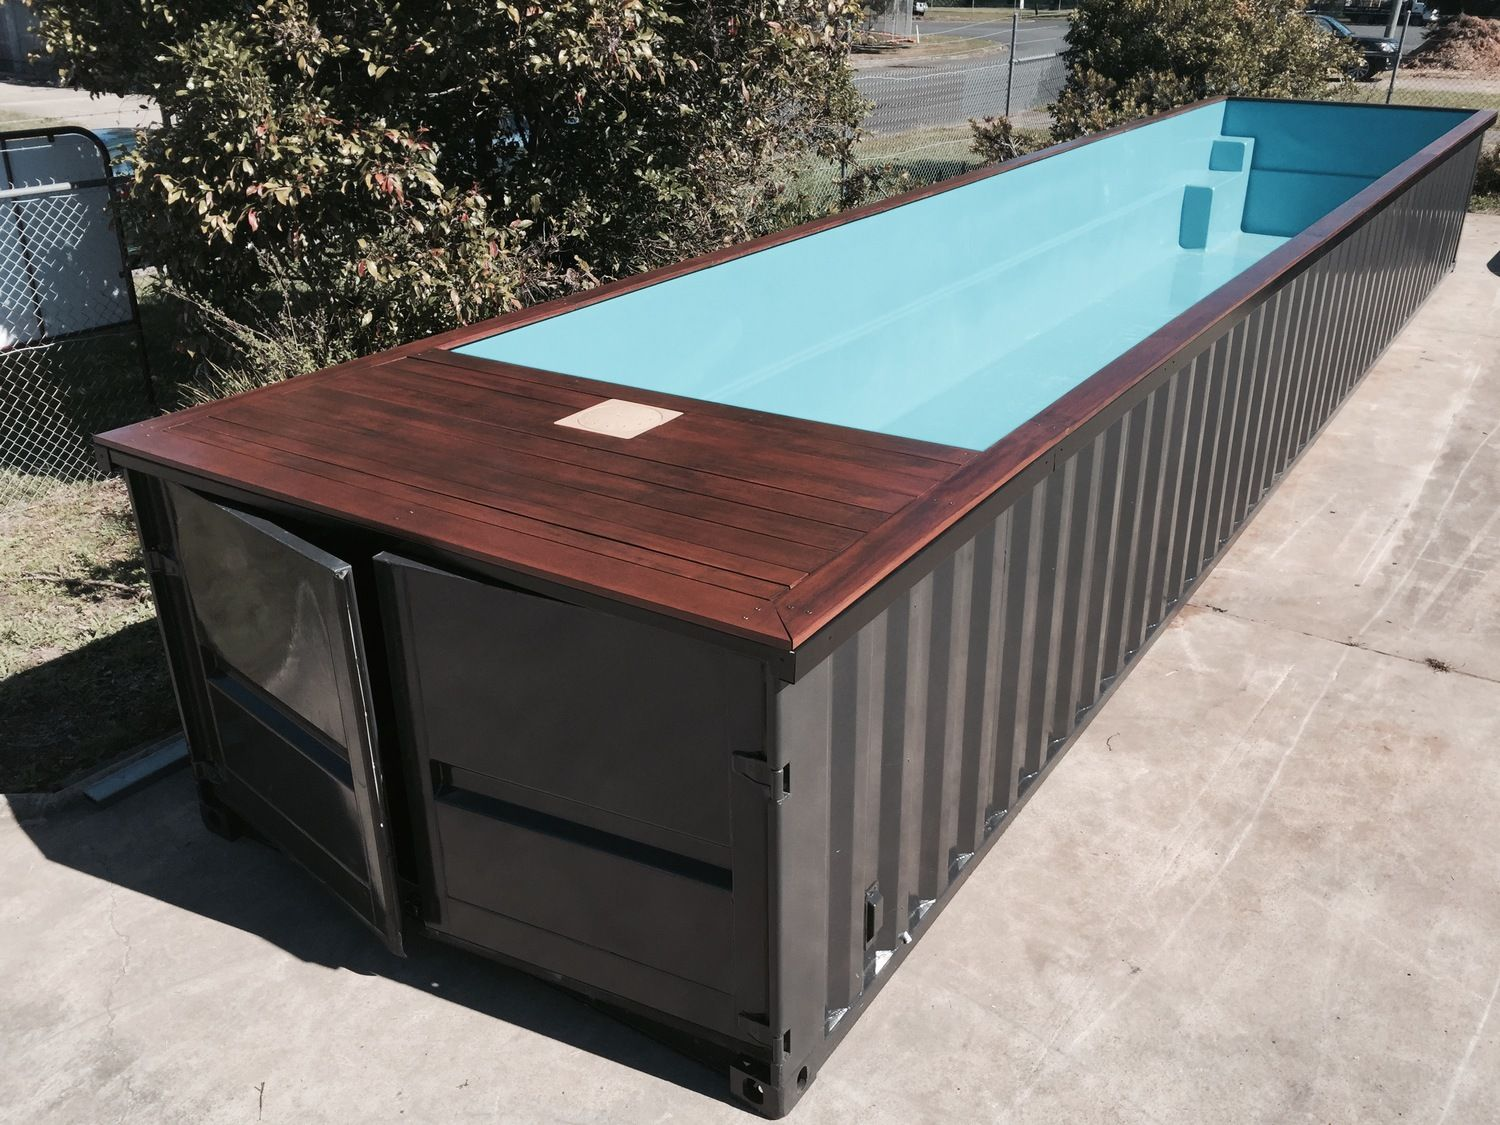 une piscine hors sol en container pour pas payer d 39 impots design pinterest piscine hors. Black Bedroom Furniture Sets. Home Design Ideas